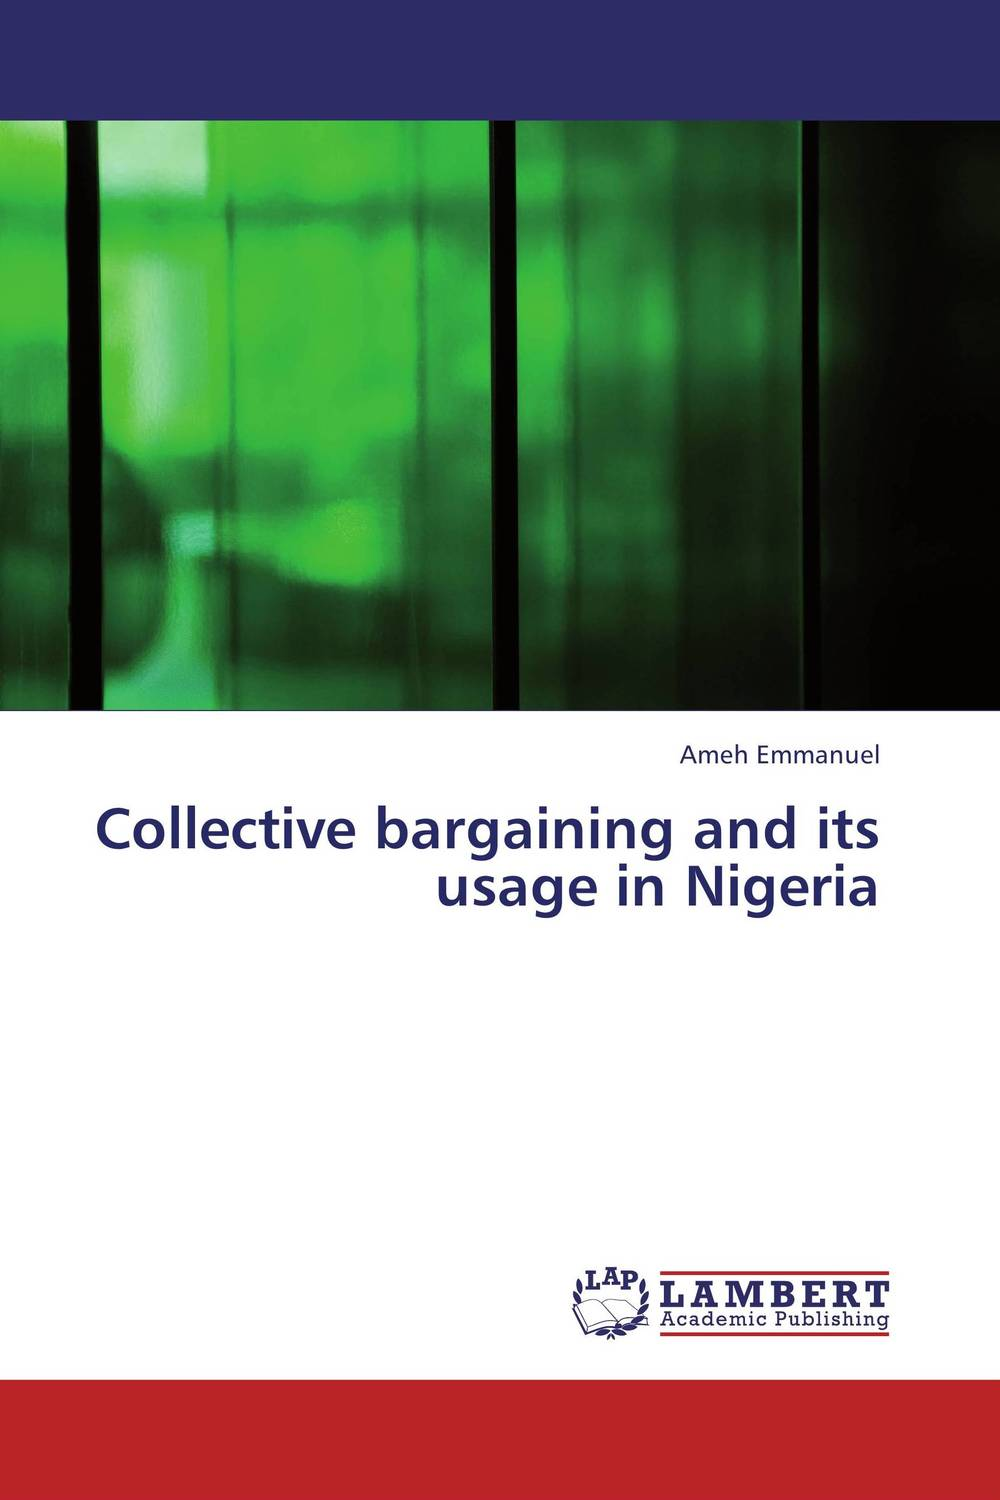 Collective bargaining and its usage in Nigeria pains and grievances of hafiz